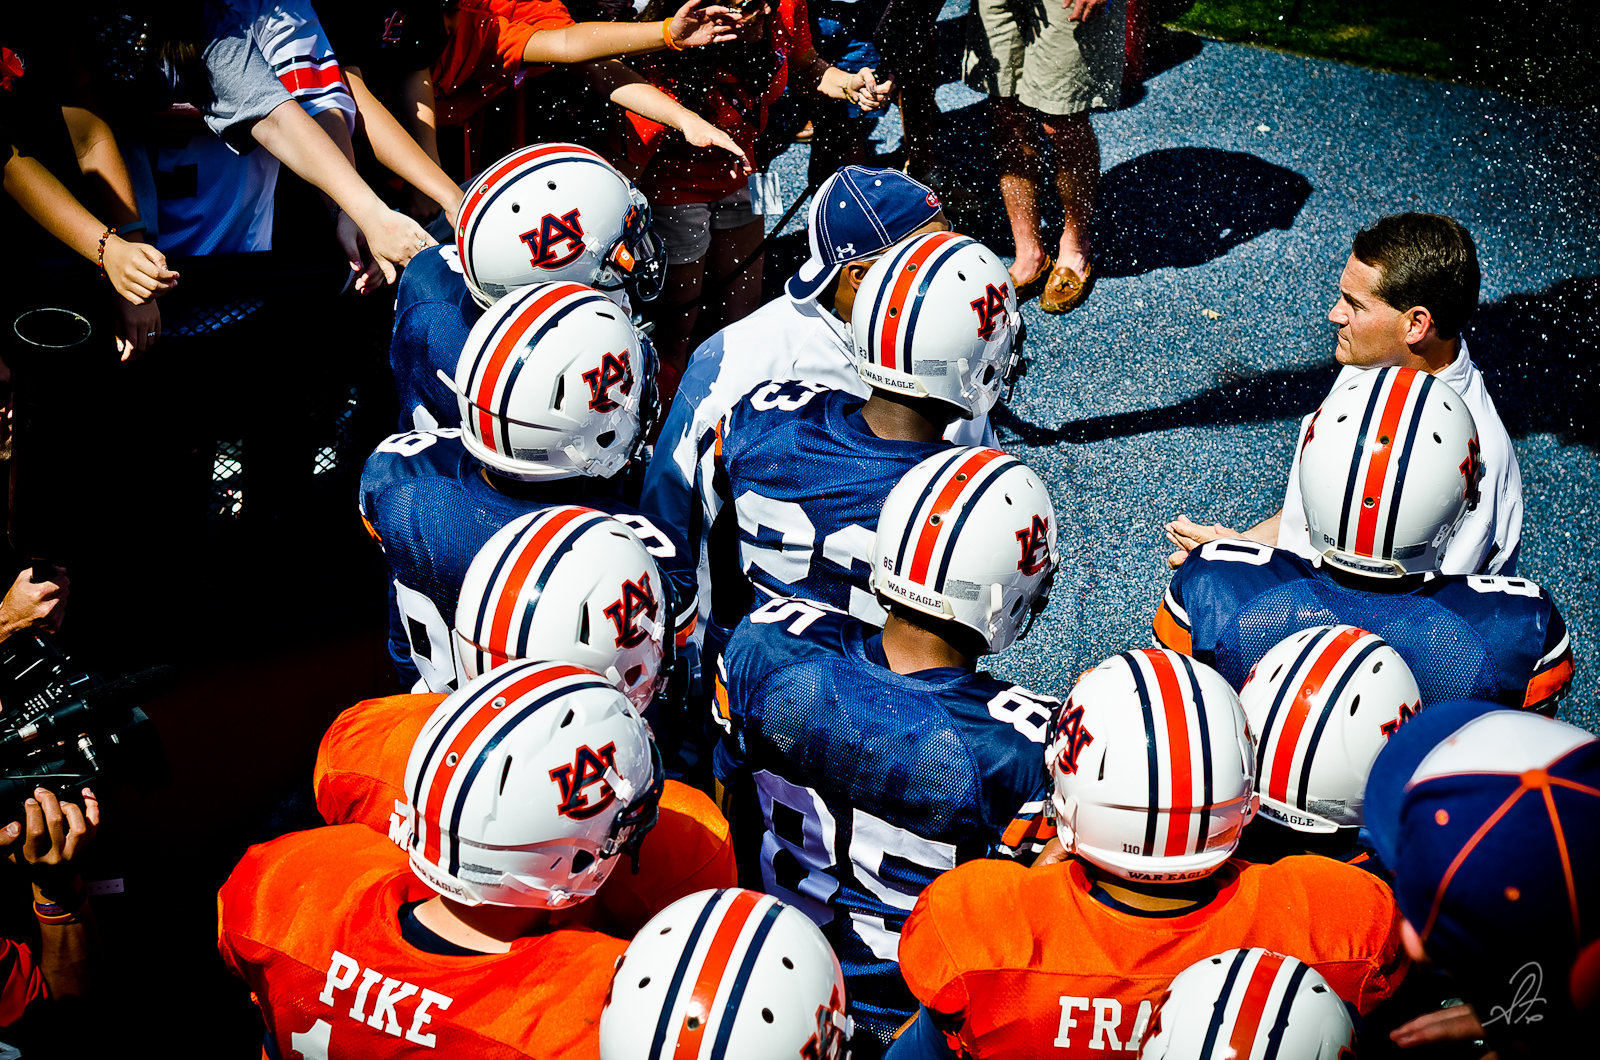 Auburn's Chizik and Trooper Talk to the Players Before Aday 2012